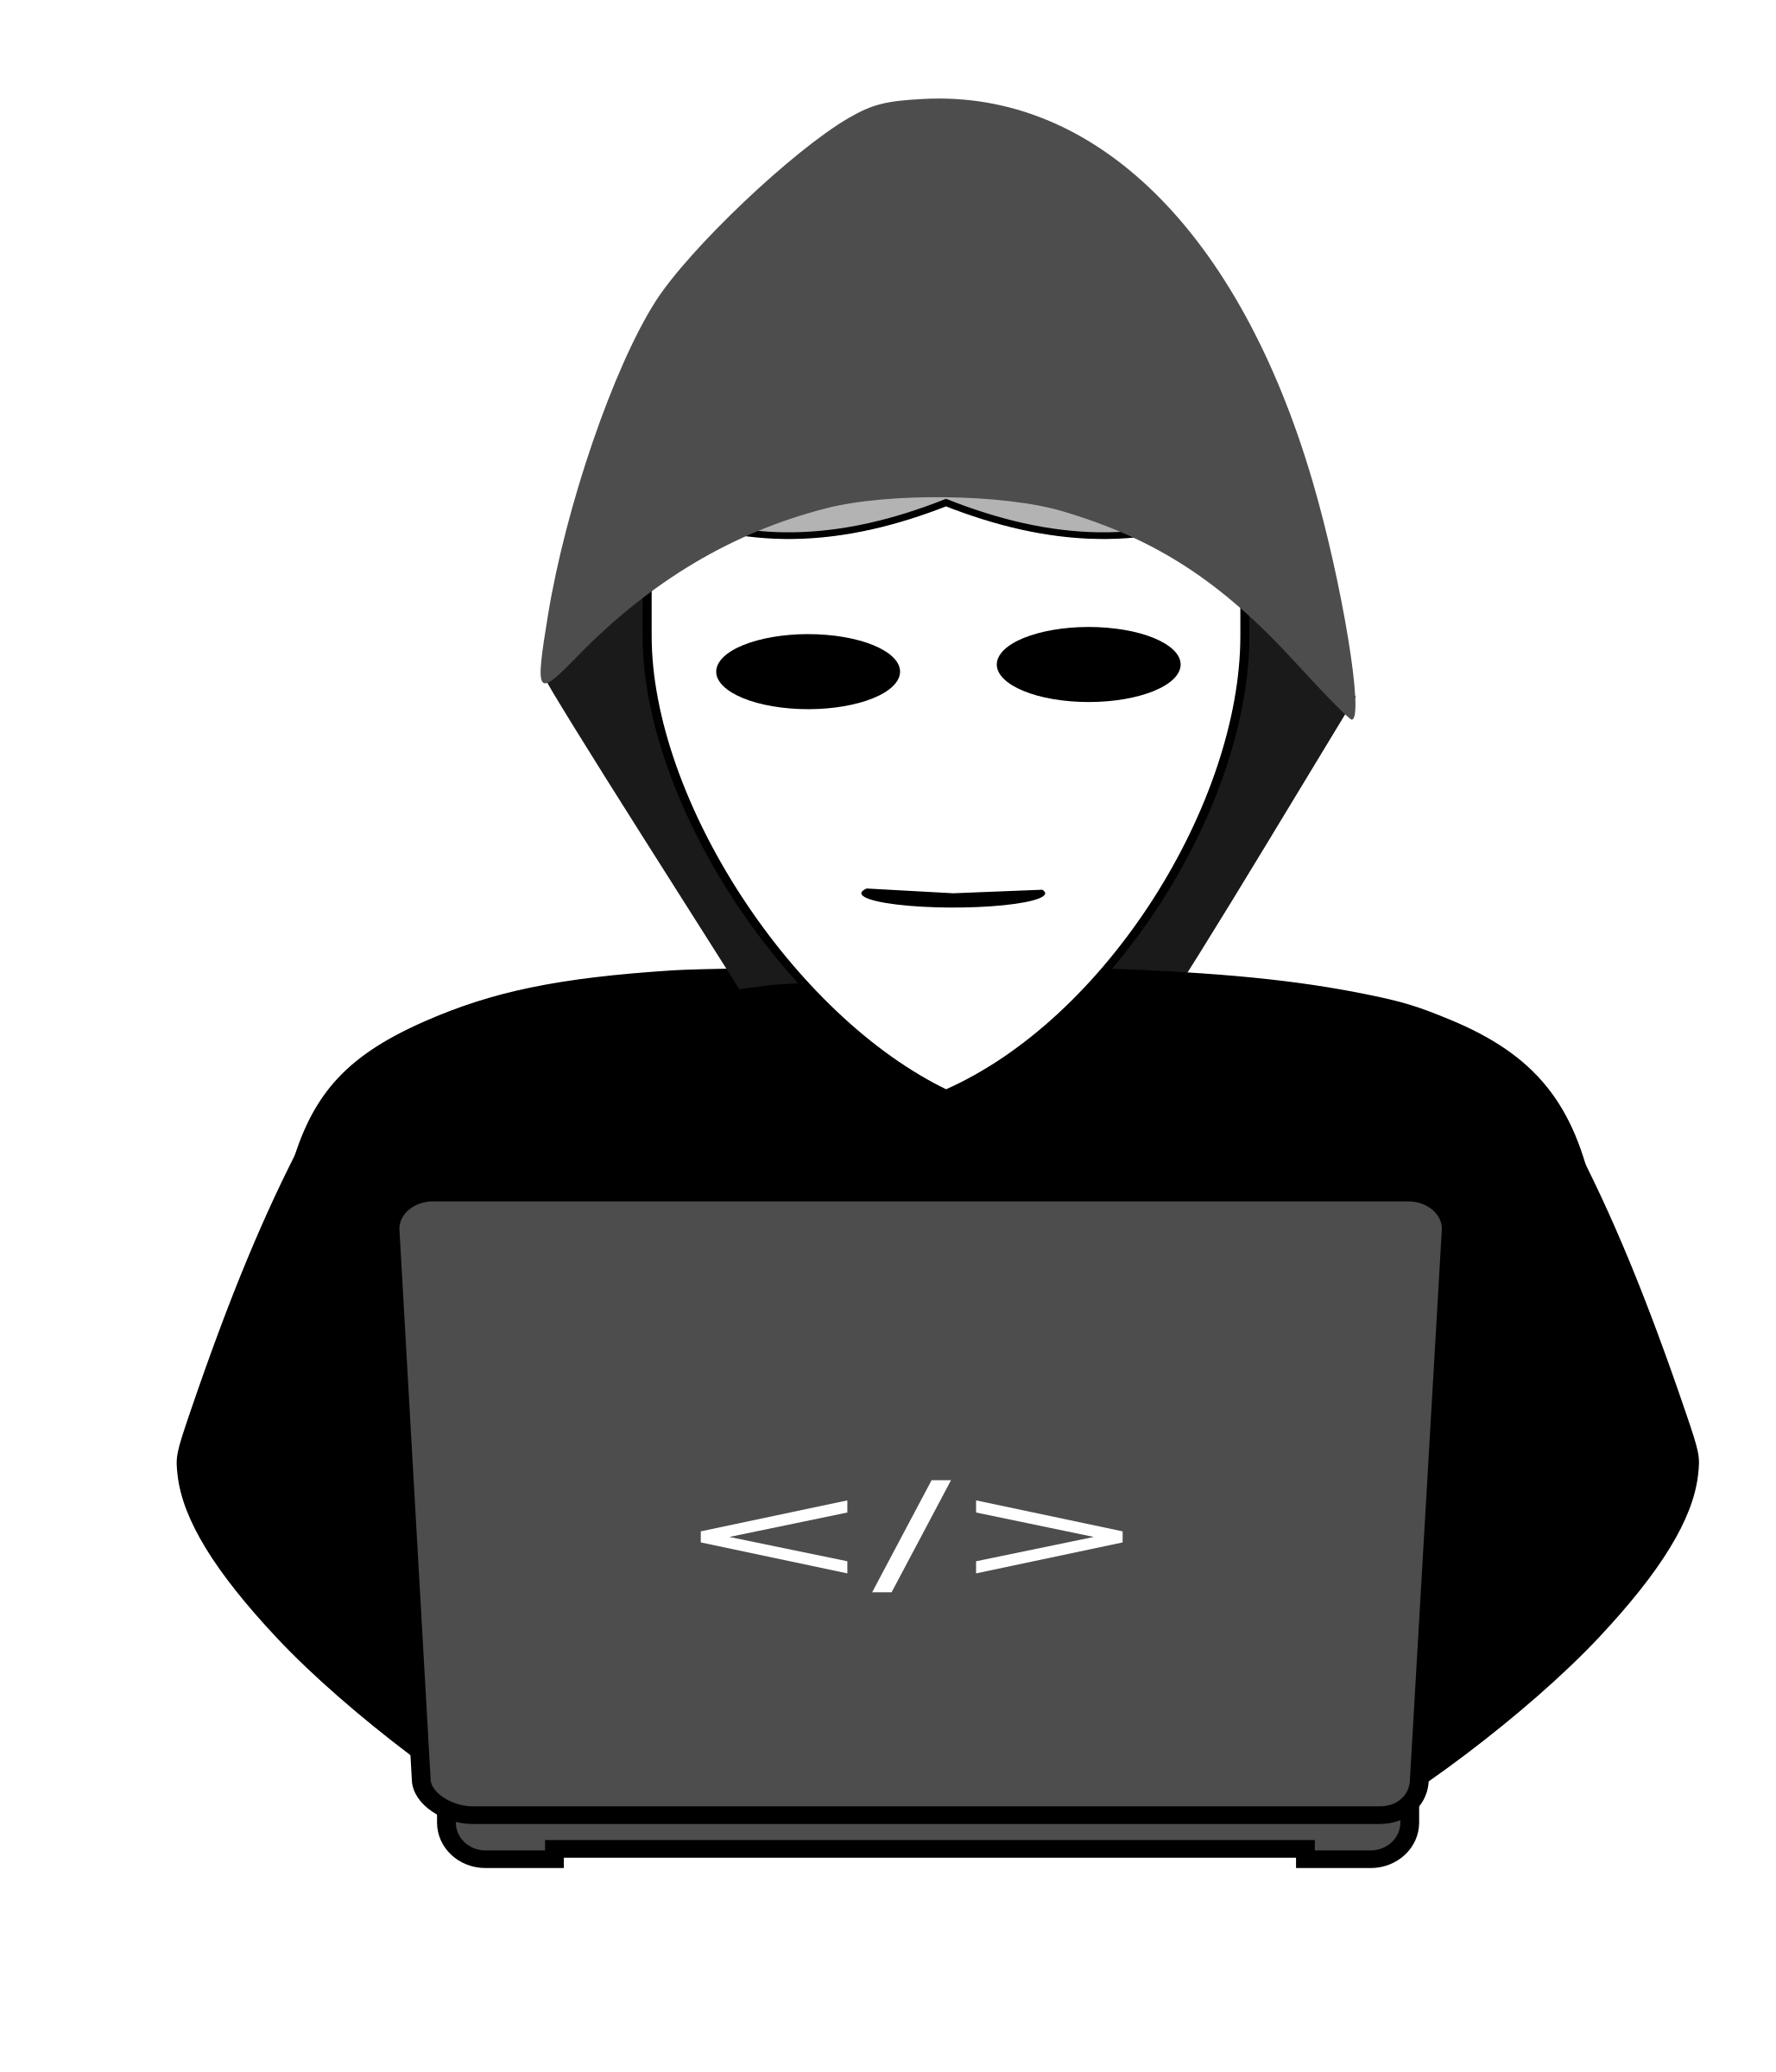 Anonymous hacker behind pc by elconomeno@email.com